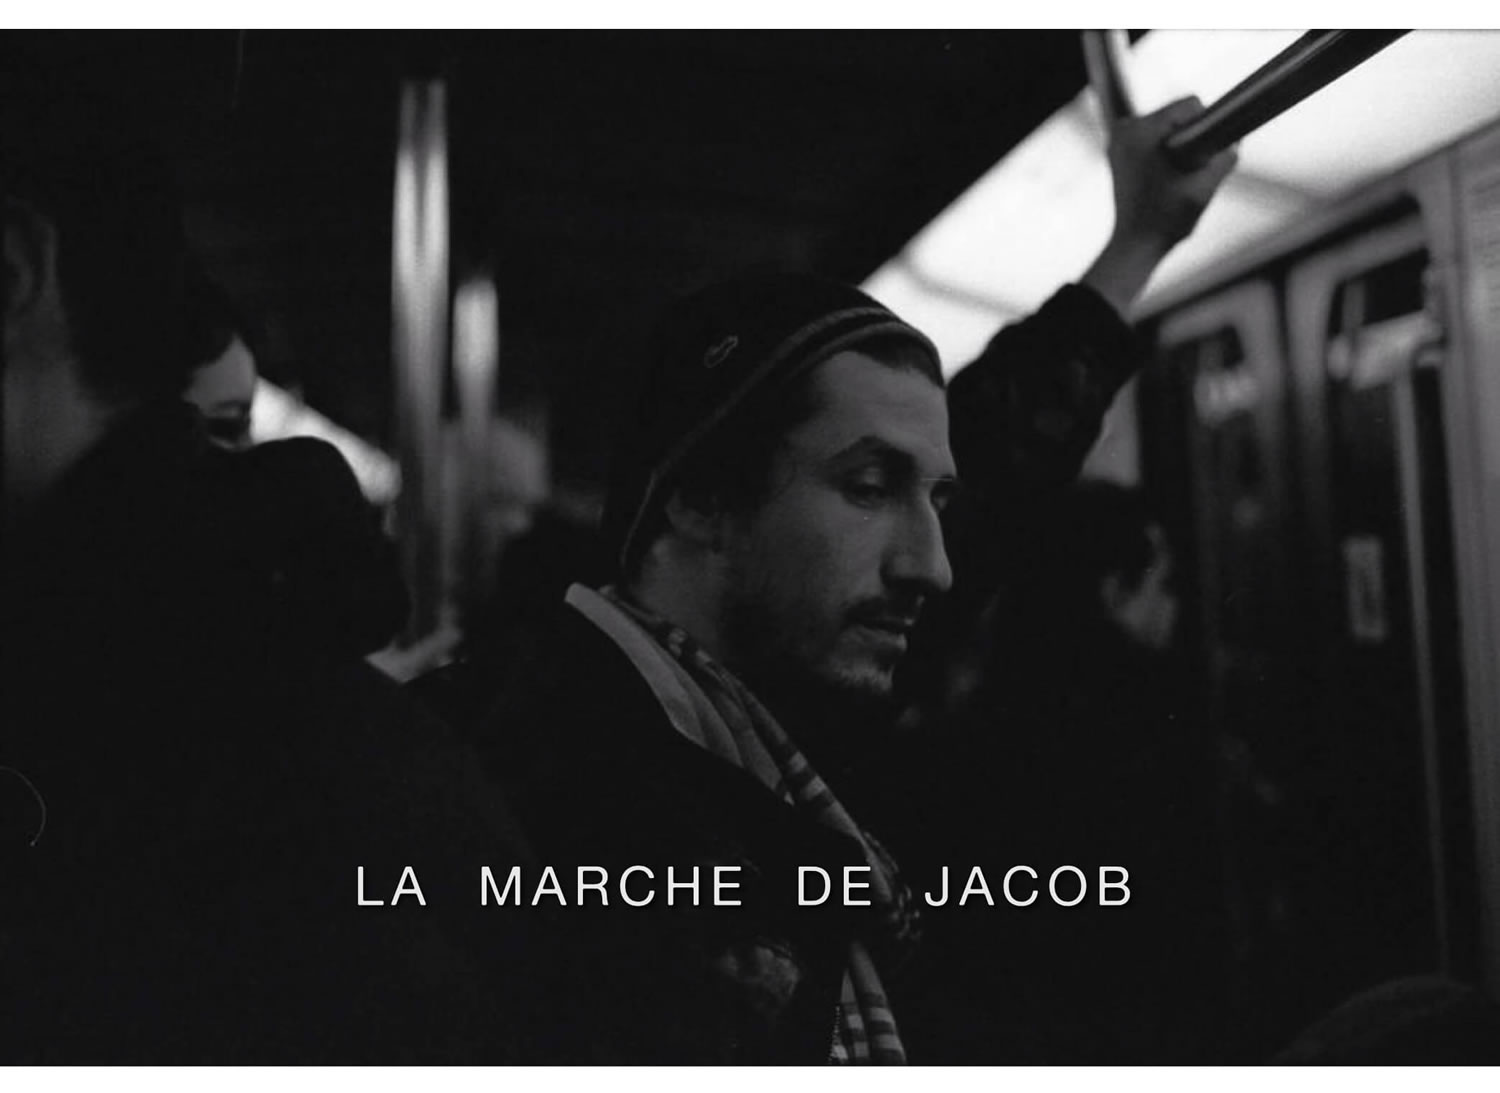 La marche de Jacob